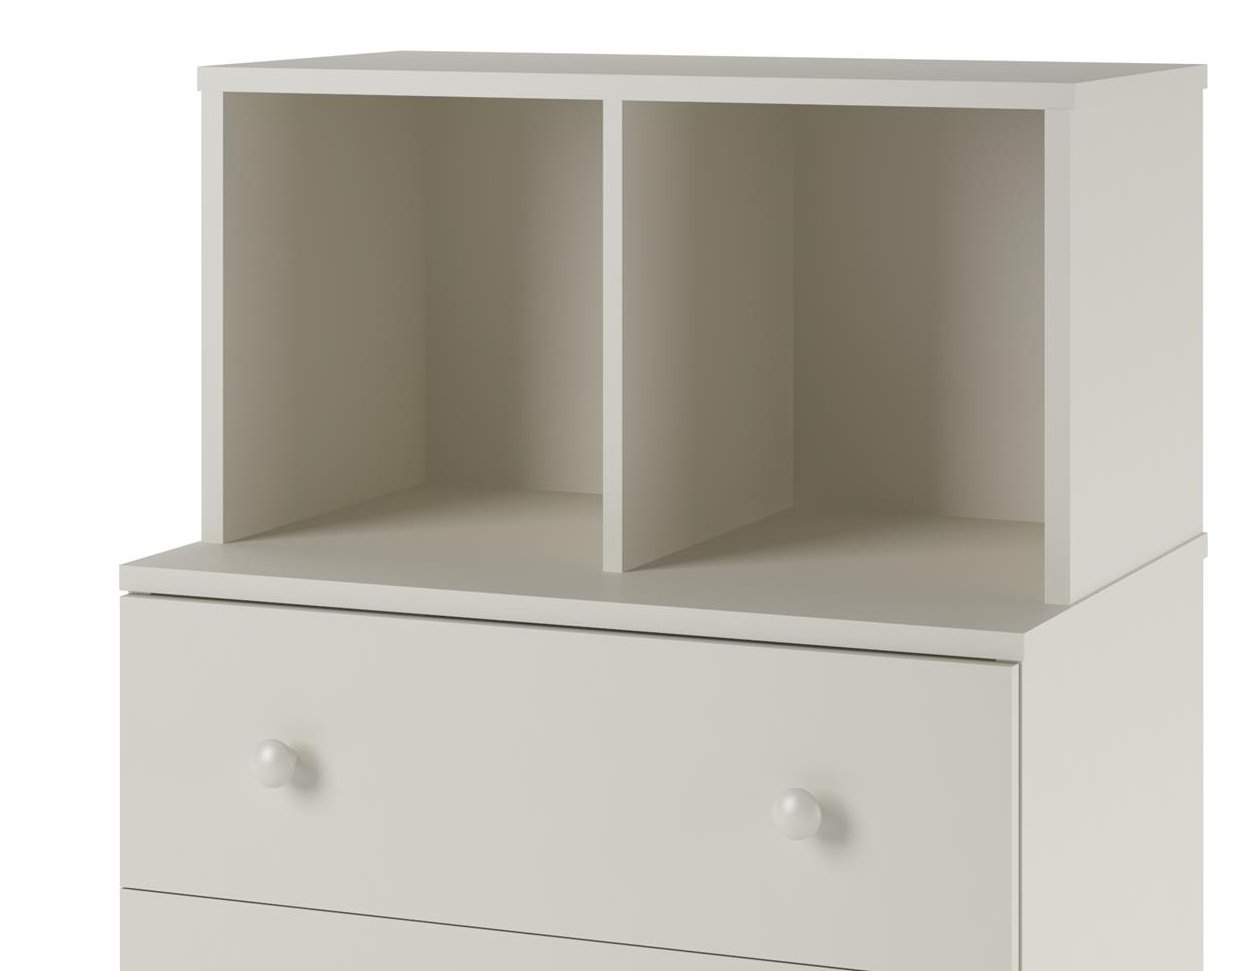 Ameriwood Home Skyler 3 Drawer Dresser with Cubbies, White by Ameriwood Home (Image #7)